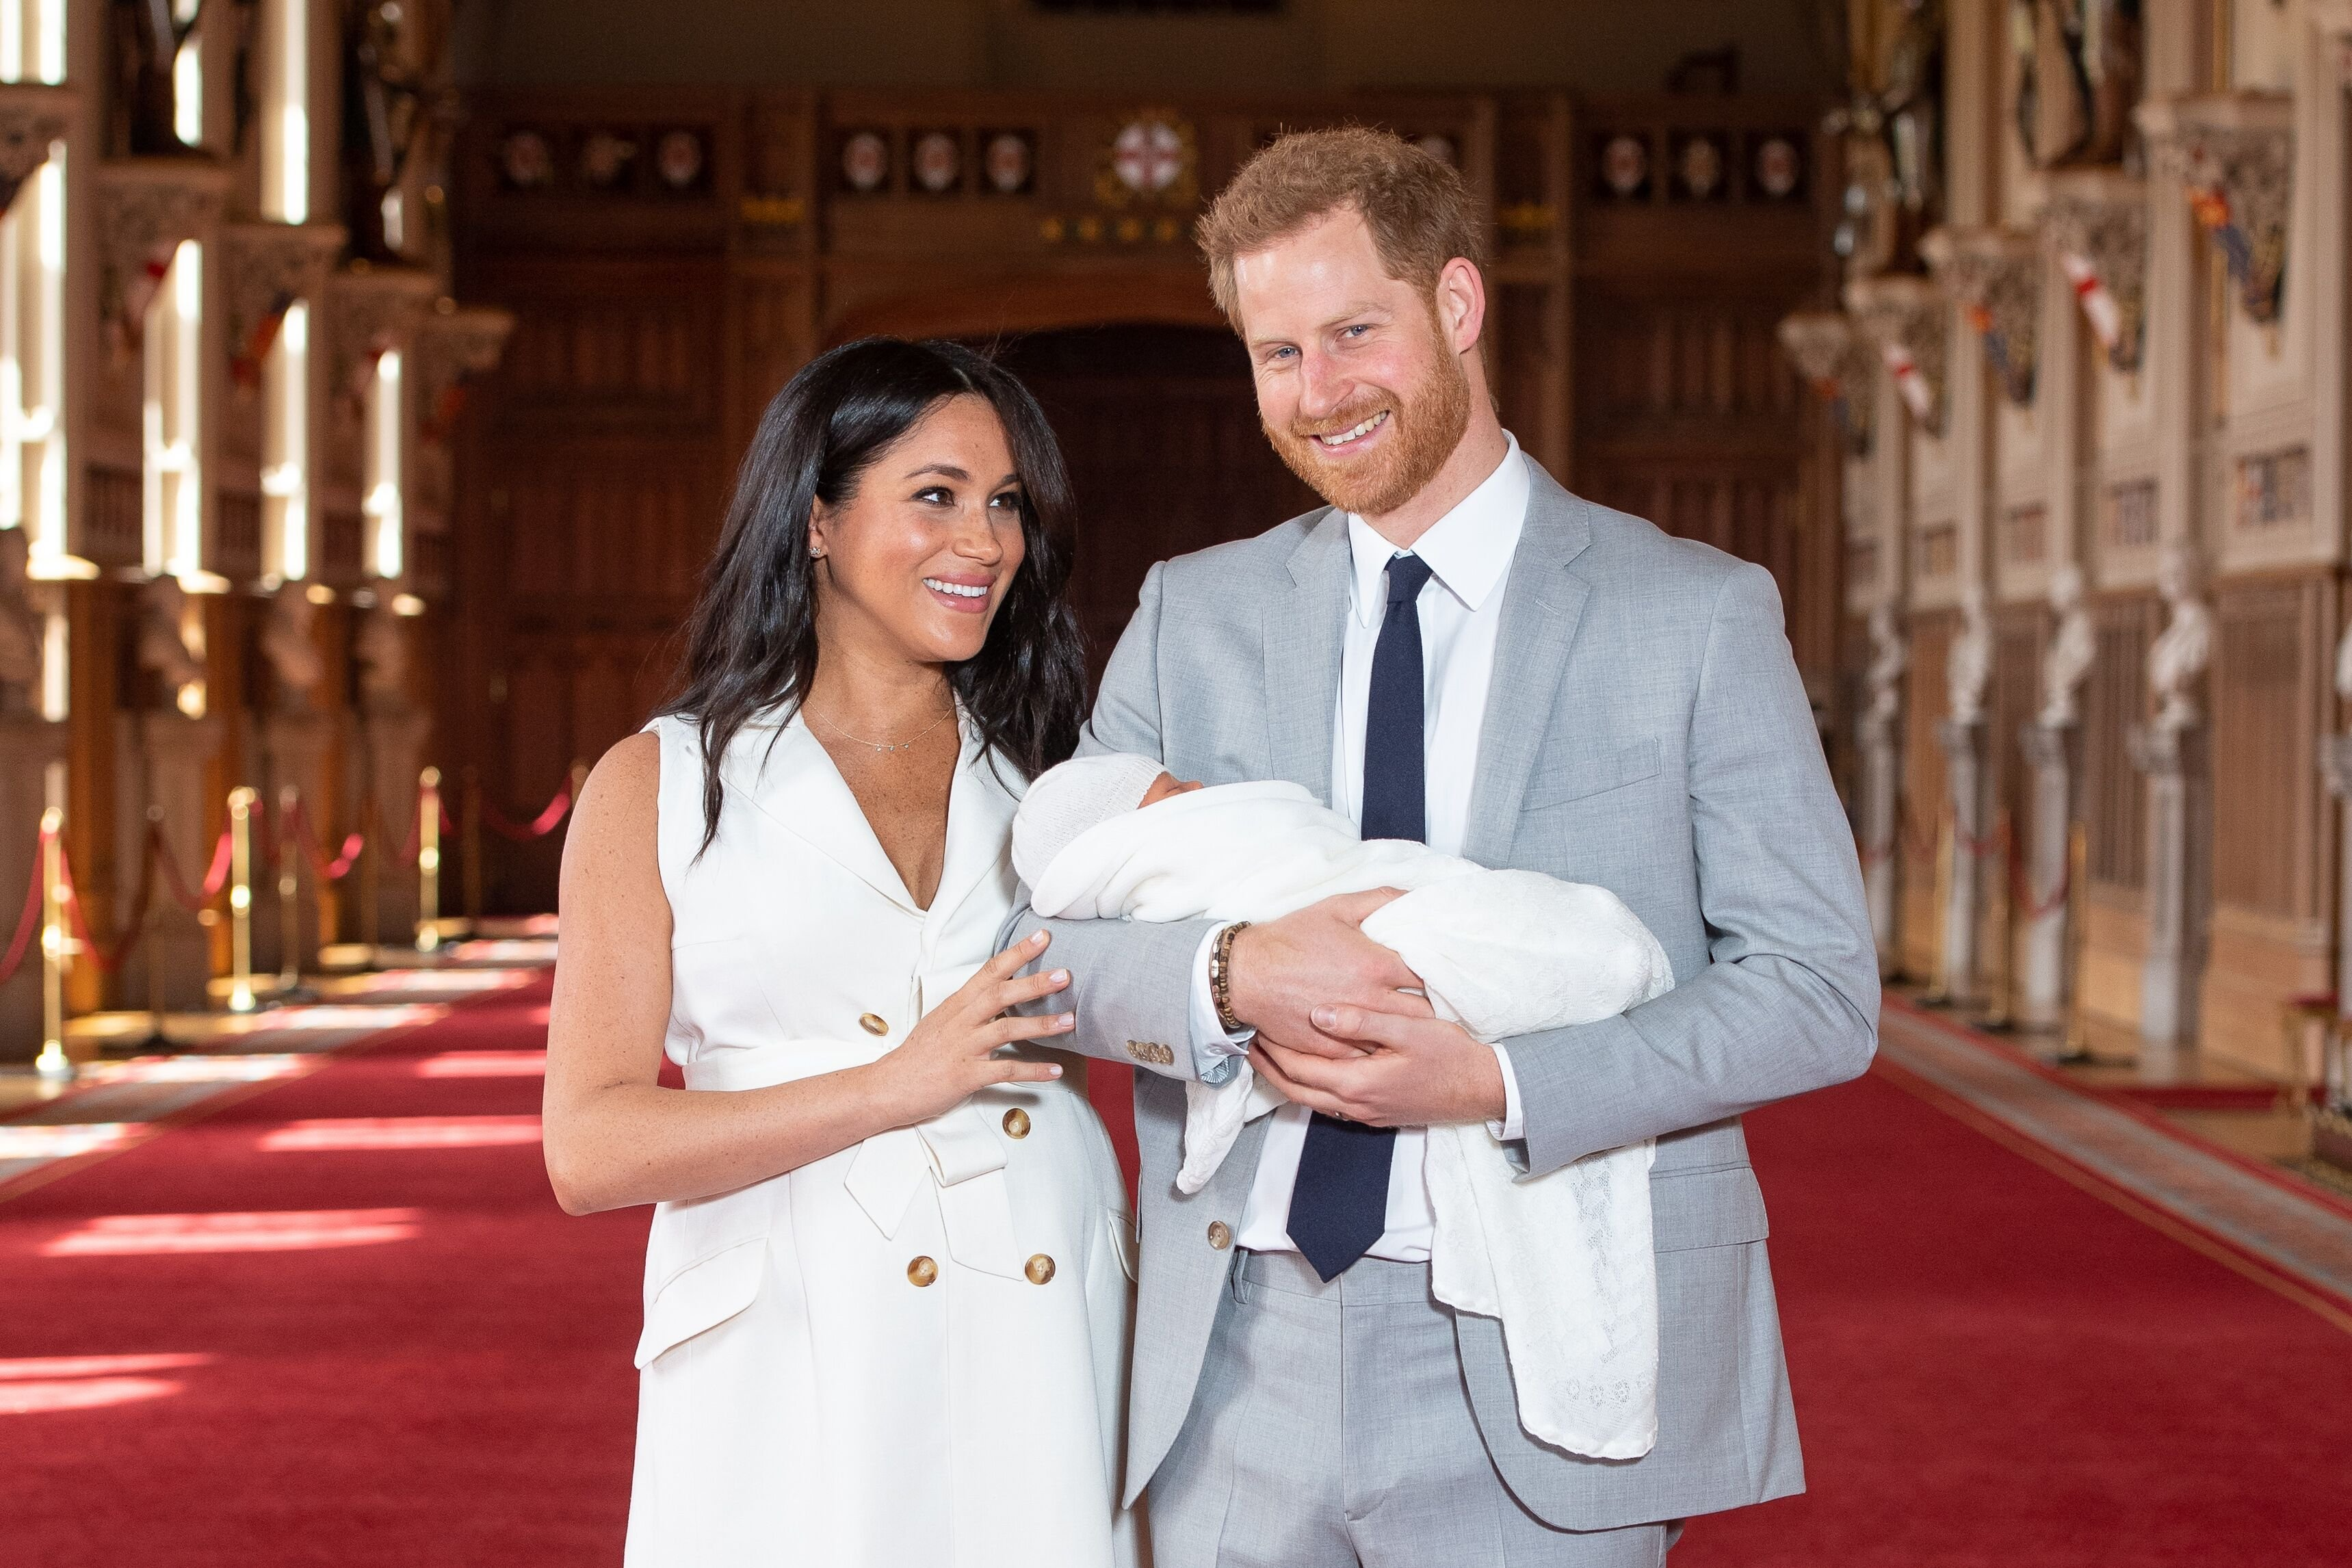 Meghan Markle and Prince Harry presenting their son to the world. | Source: Getty Images